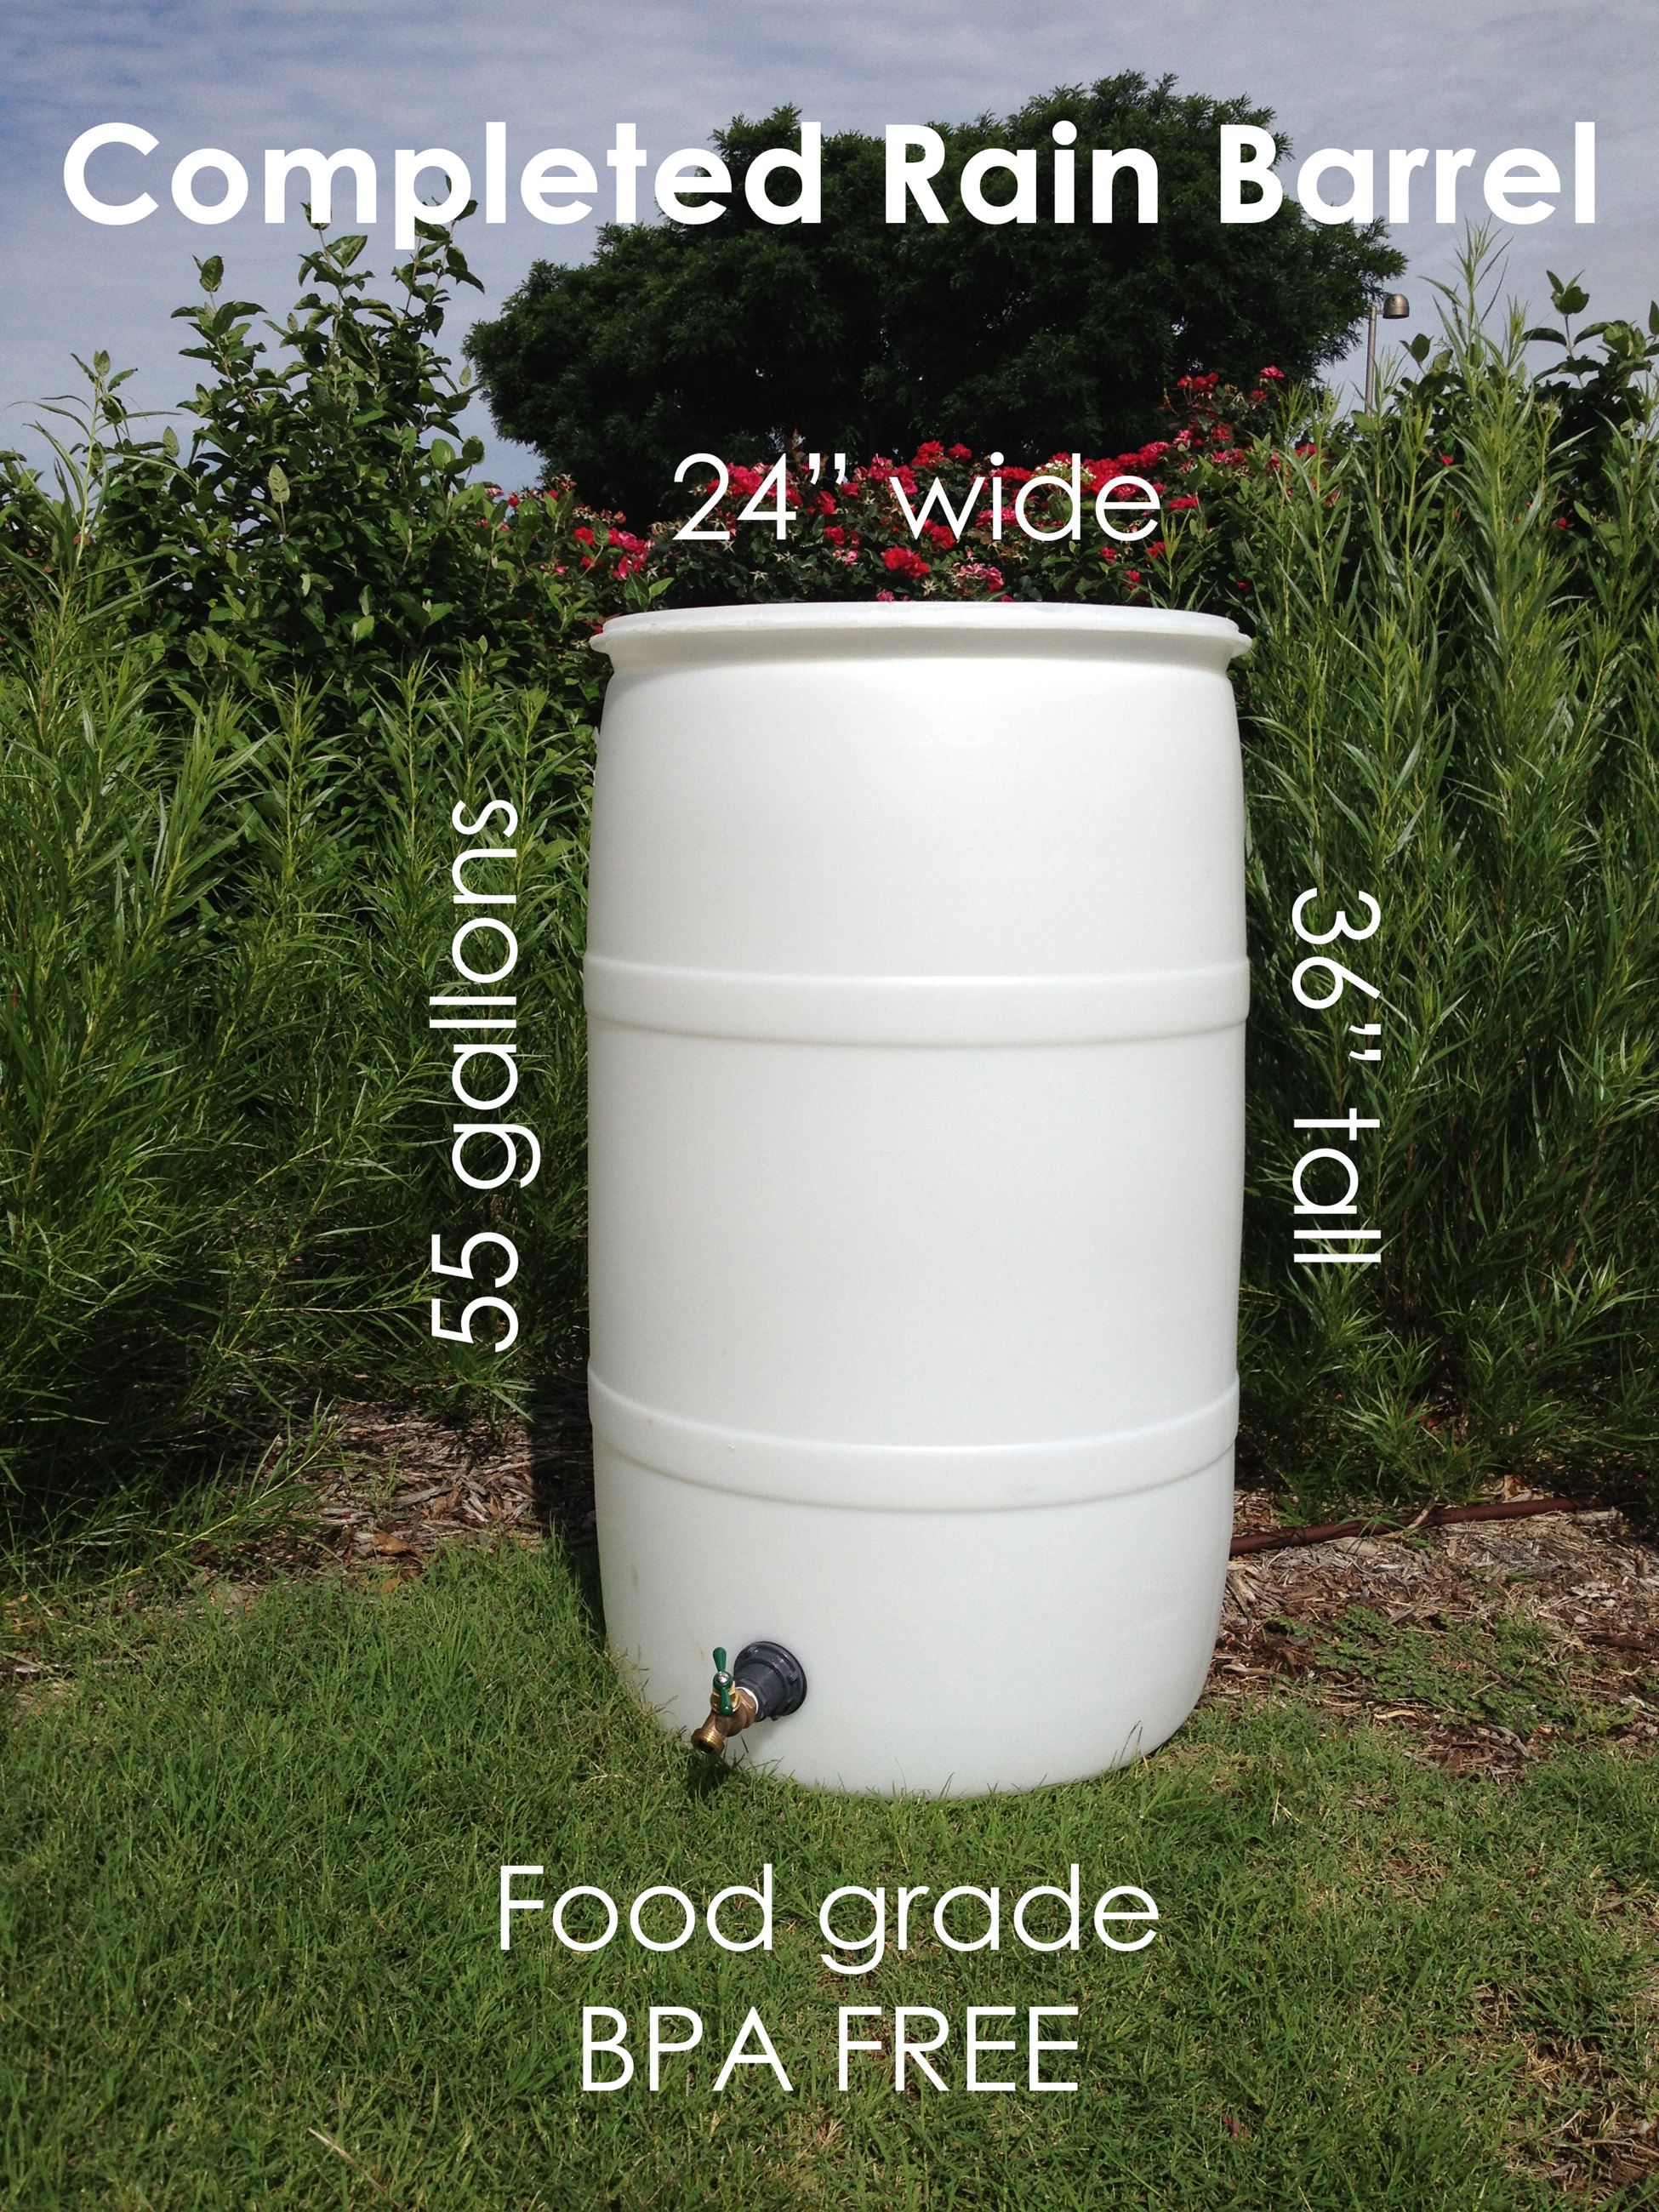 Rain Barrel Sample Photo